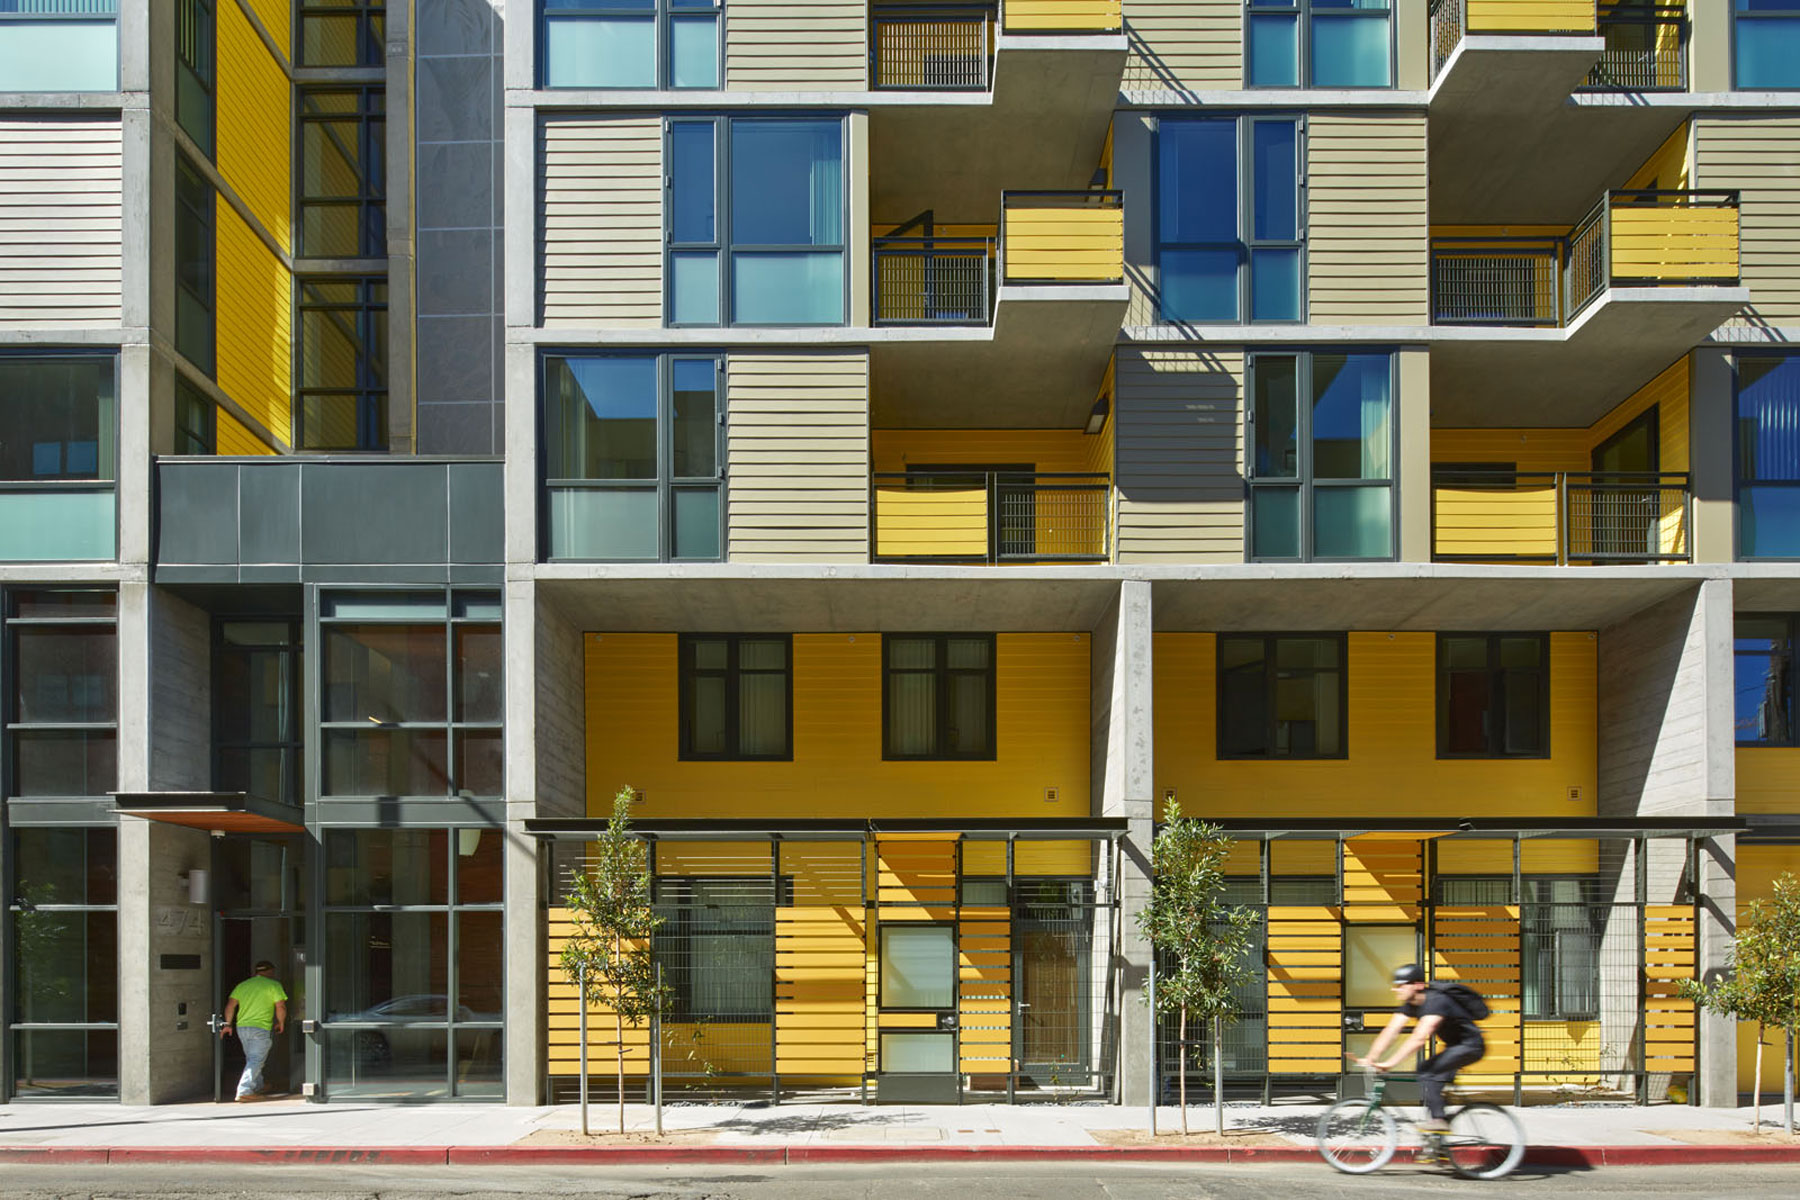 474 Natoma Apartments is an affordable family housing development in San Francisco's South of Market Redevelopment Area; it integrates many sustainable features resulting in a high Green Point certification.